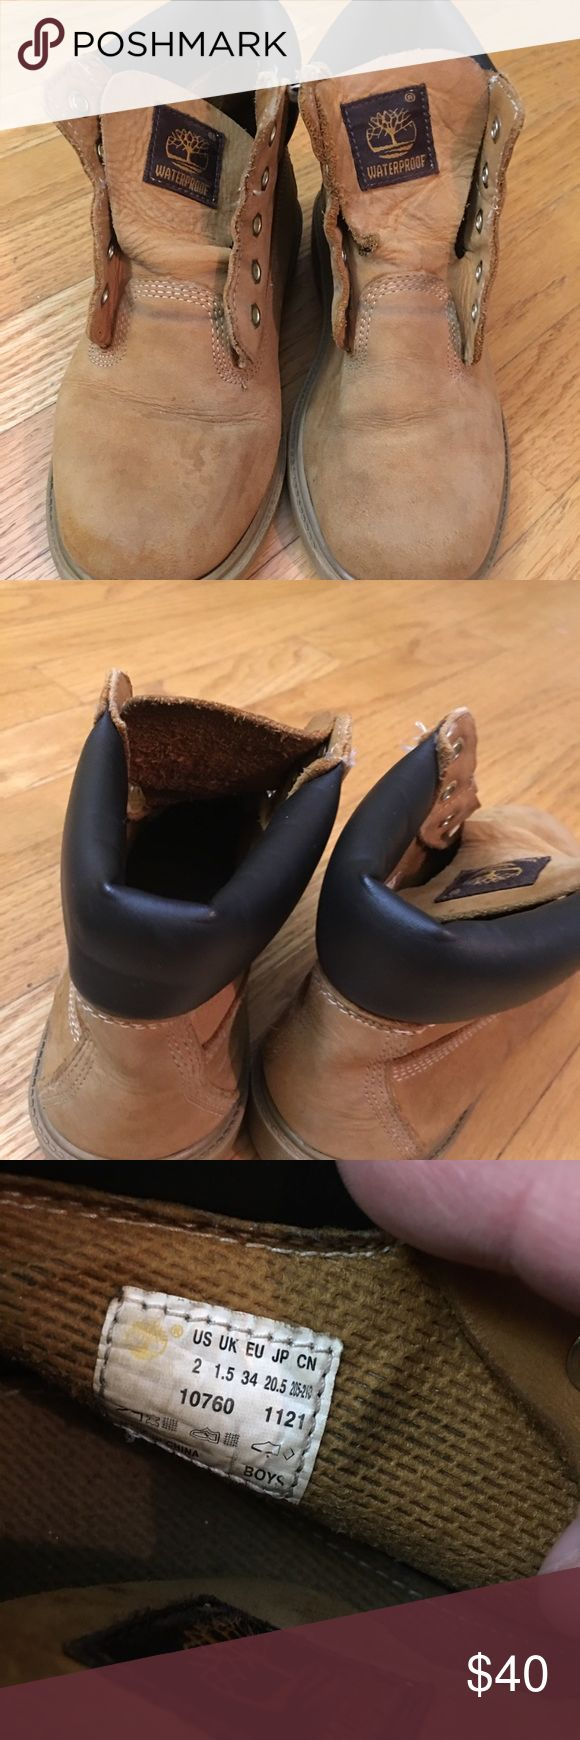 Boys Timberlands waterproof Wear and tear but with a little TLC will be cute on your little one.   Will send a few pairs of laces.  Original laces are gone. Timberland Shoes Boots